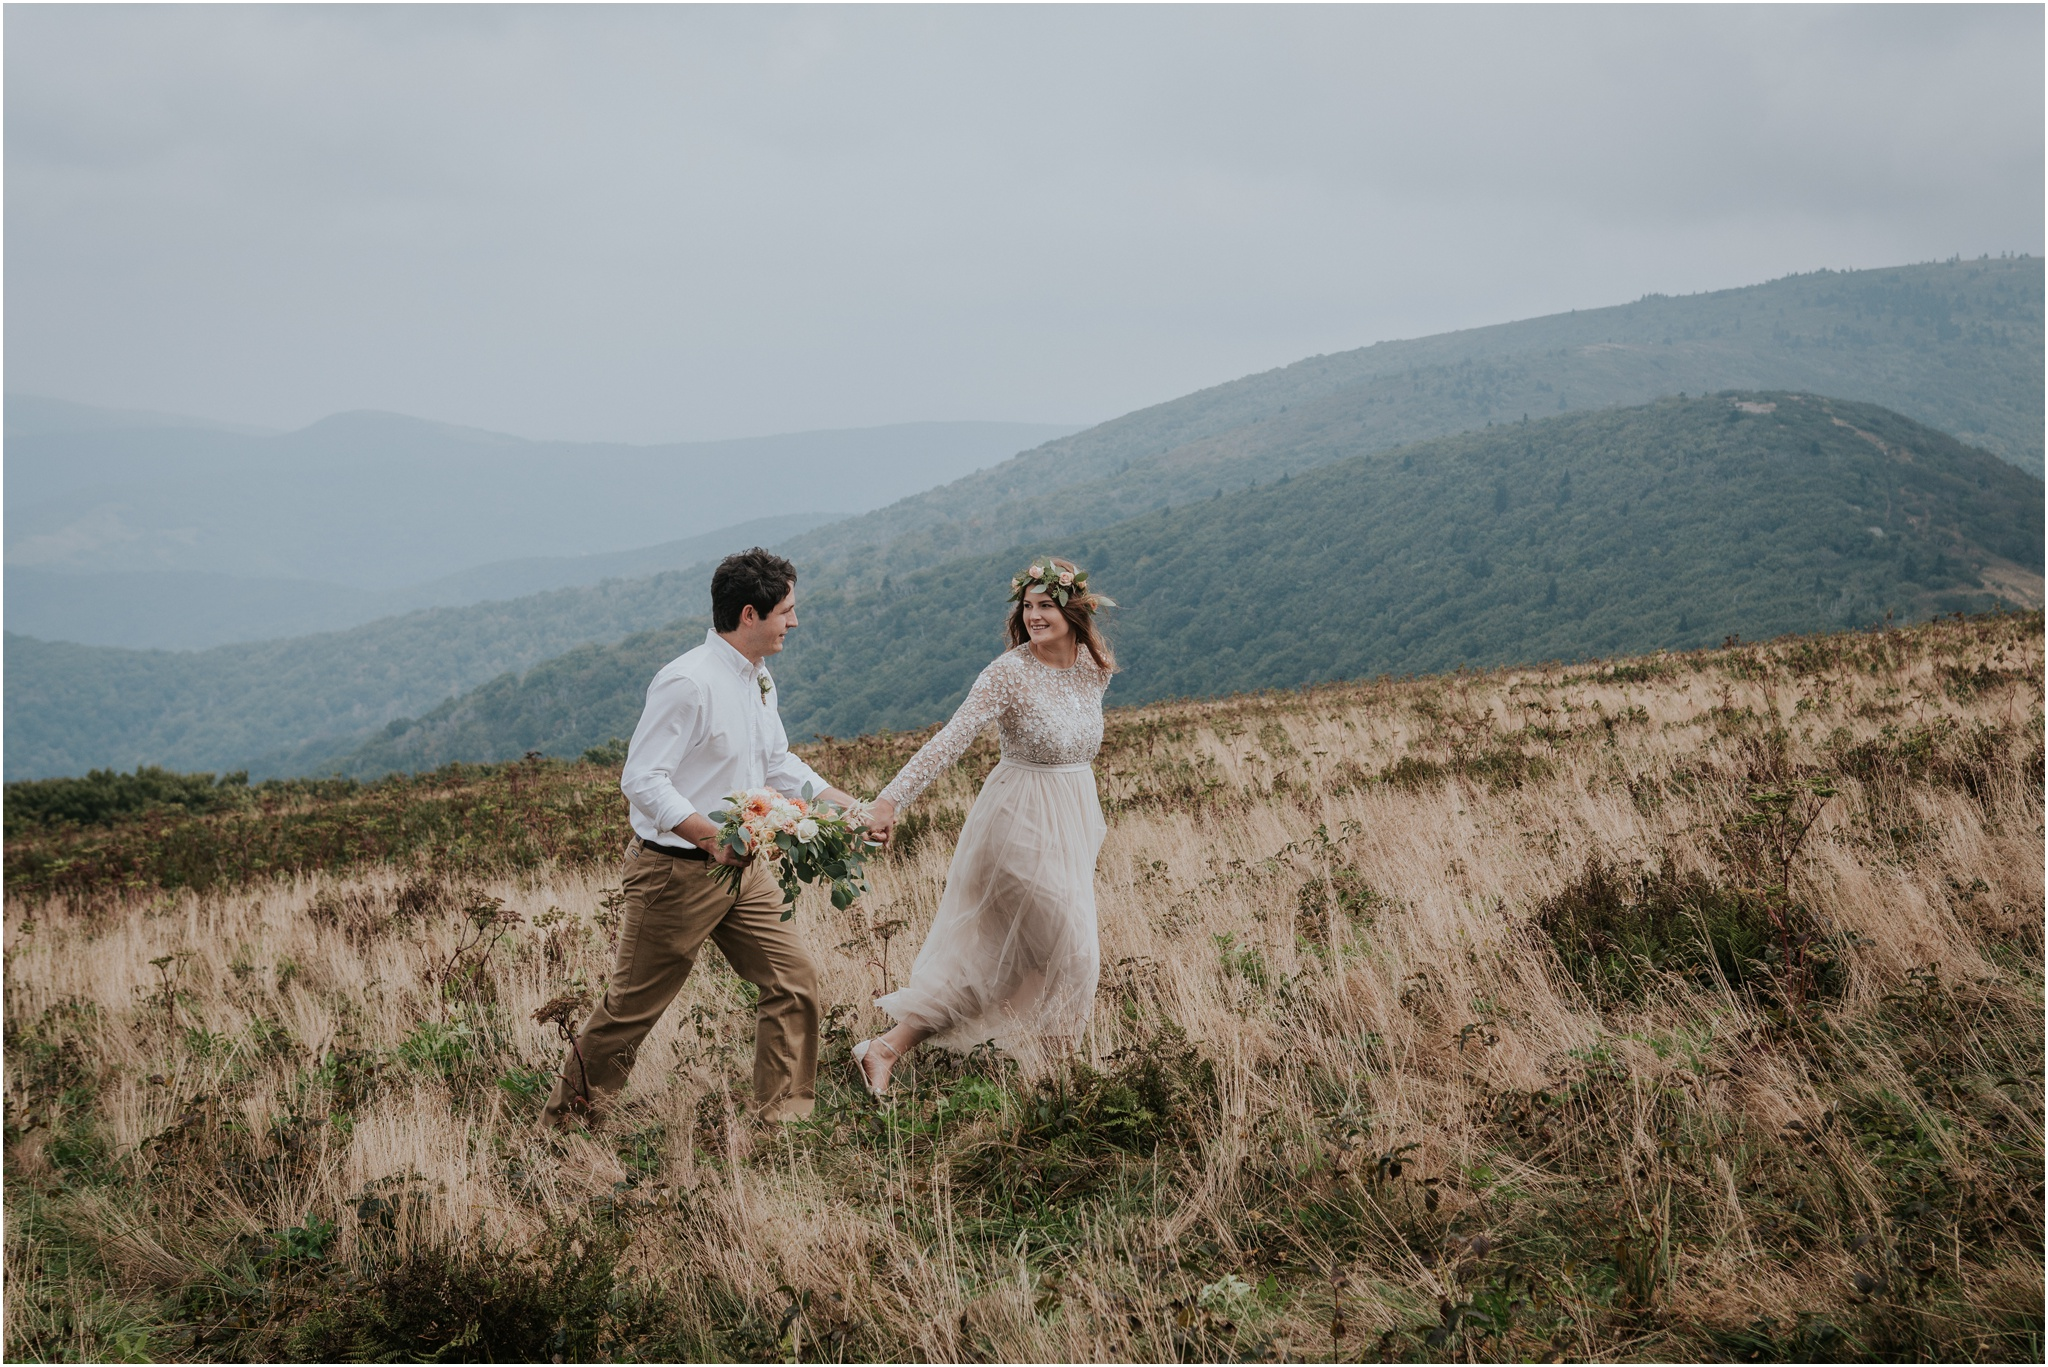 katy-sergent-photography-roan-mountain-tennessee-engagement-session-intimate-wedding-johnson-city_0004.jpg